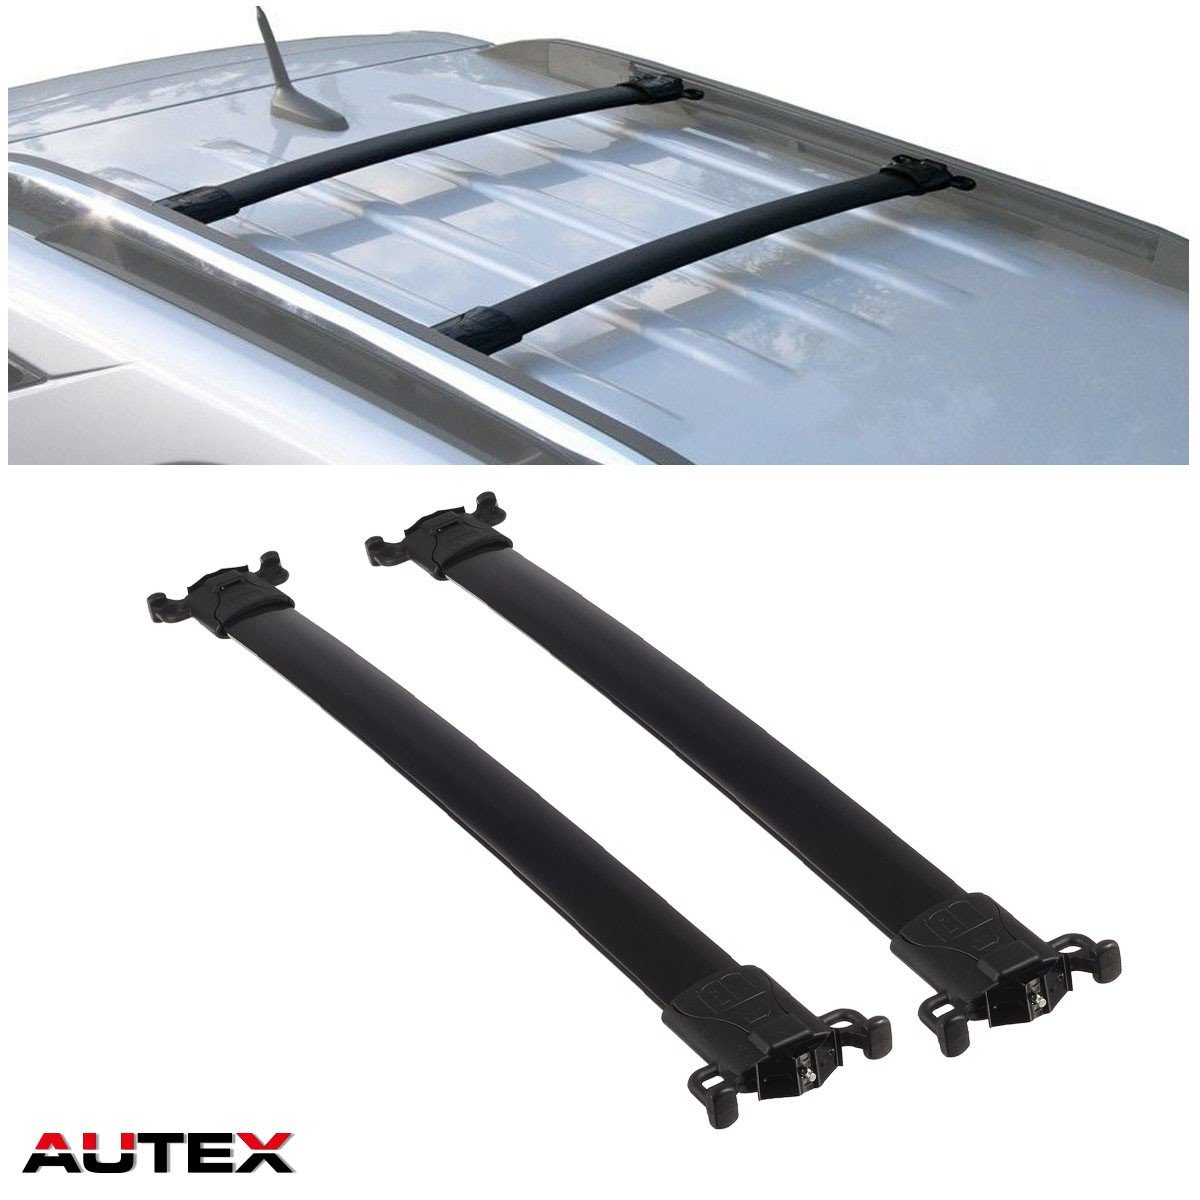 AUTEX Aluminum Roof Rack Crossbars Luggage Carrier Rail Rack Compatible with 2010 2011 2012 2013 2014 2015 2016 2017 Chevrolet Equinox GMC Terrain Cross Bars Rack Roof Top Cargo Carrier Bars